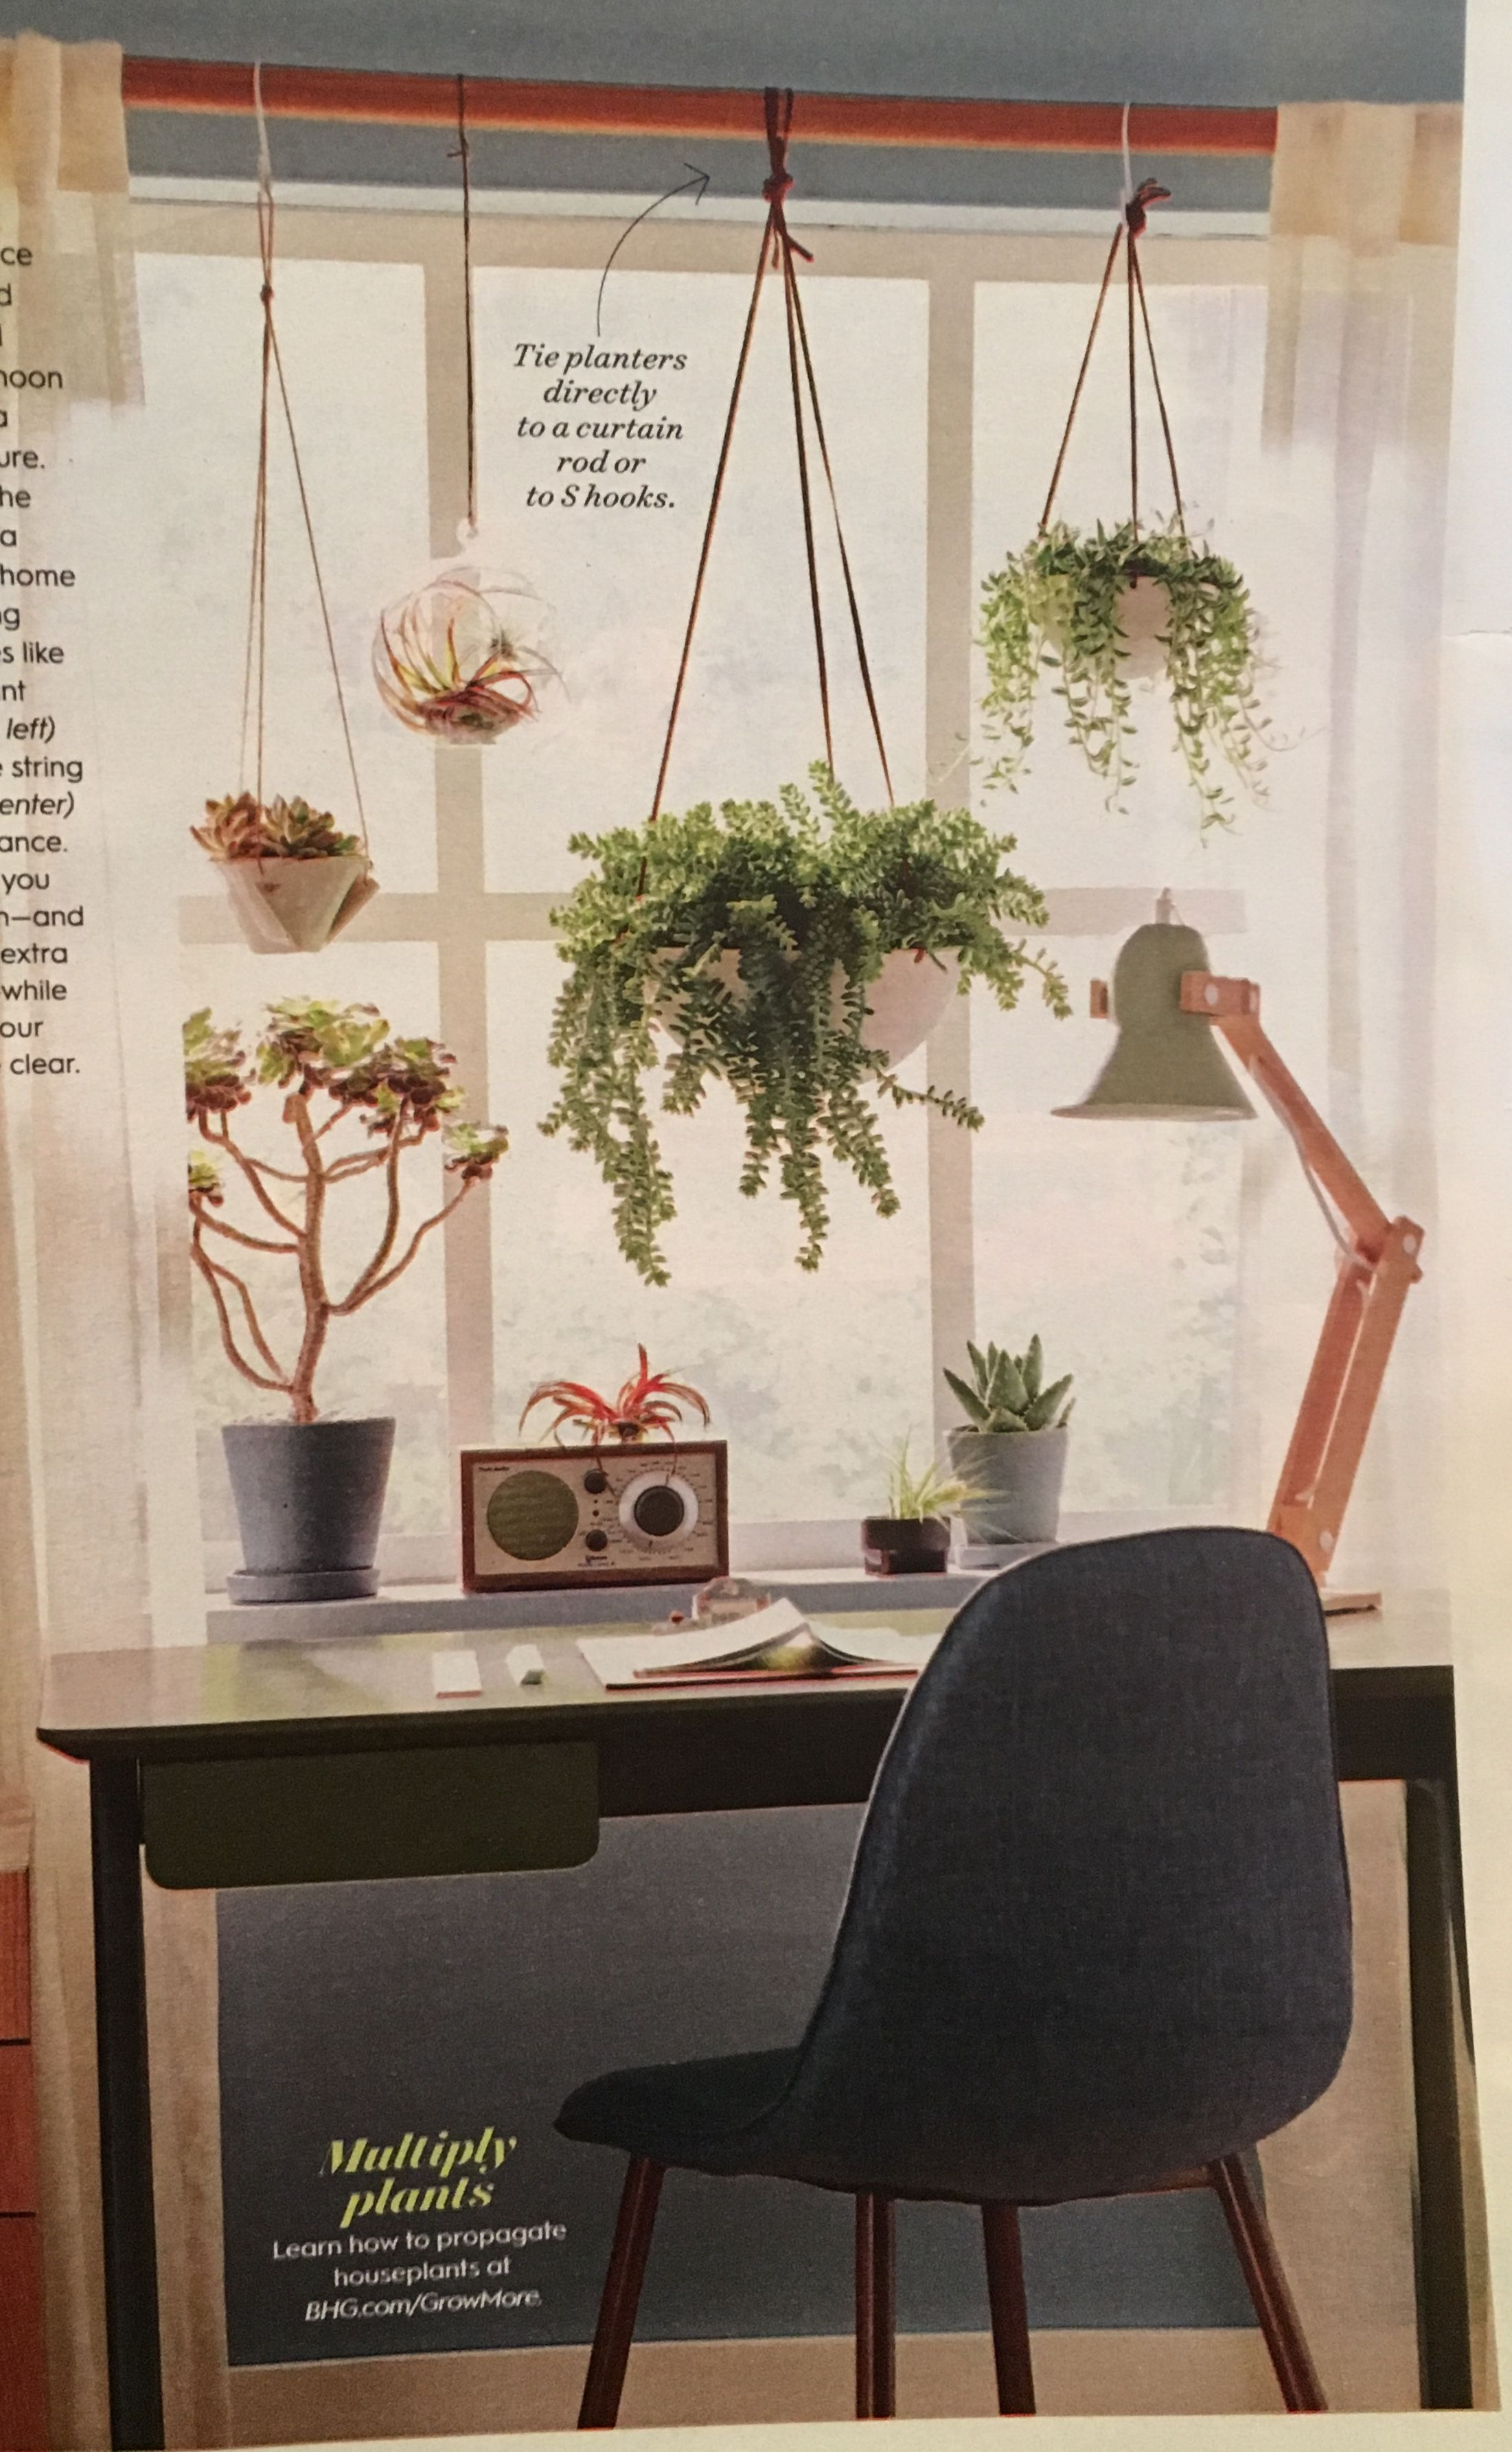 Hang Plants From Curtain Rod Sun Room Library Idea Room With